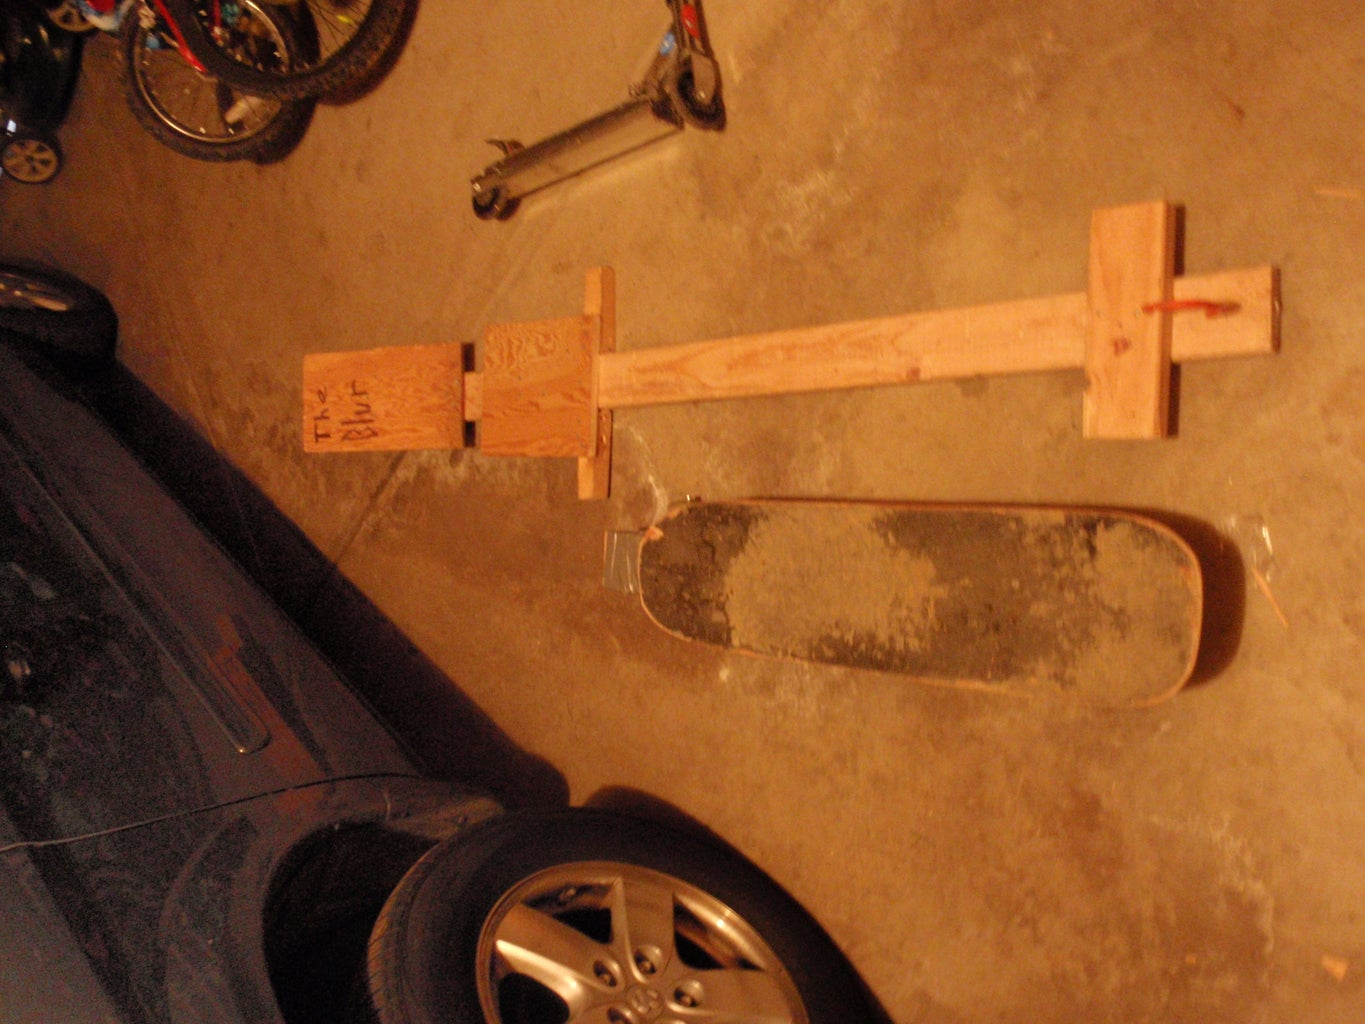 Street Luge (with New Modifications)